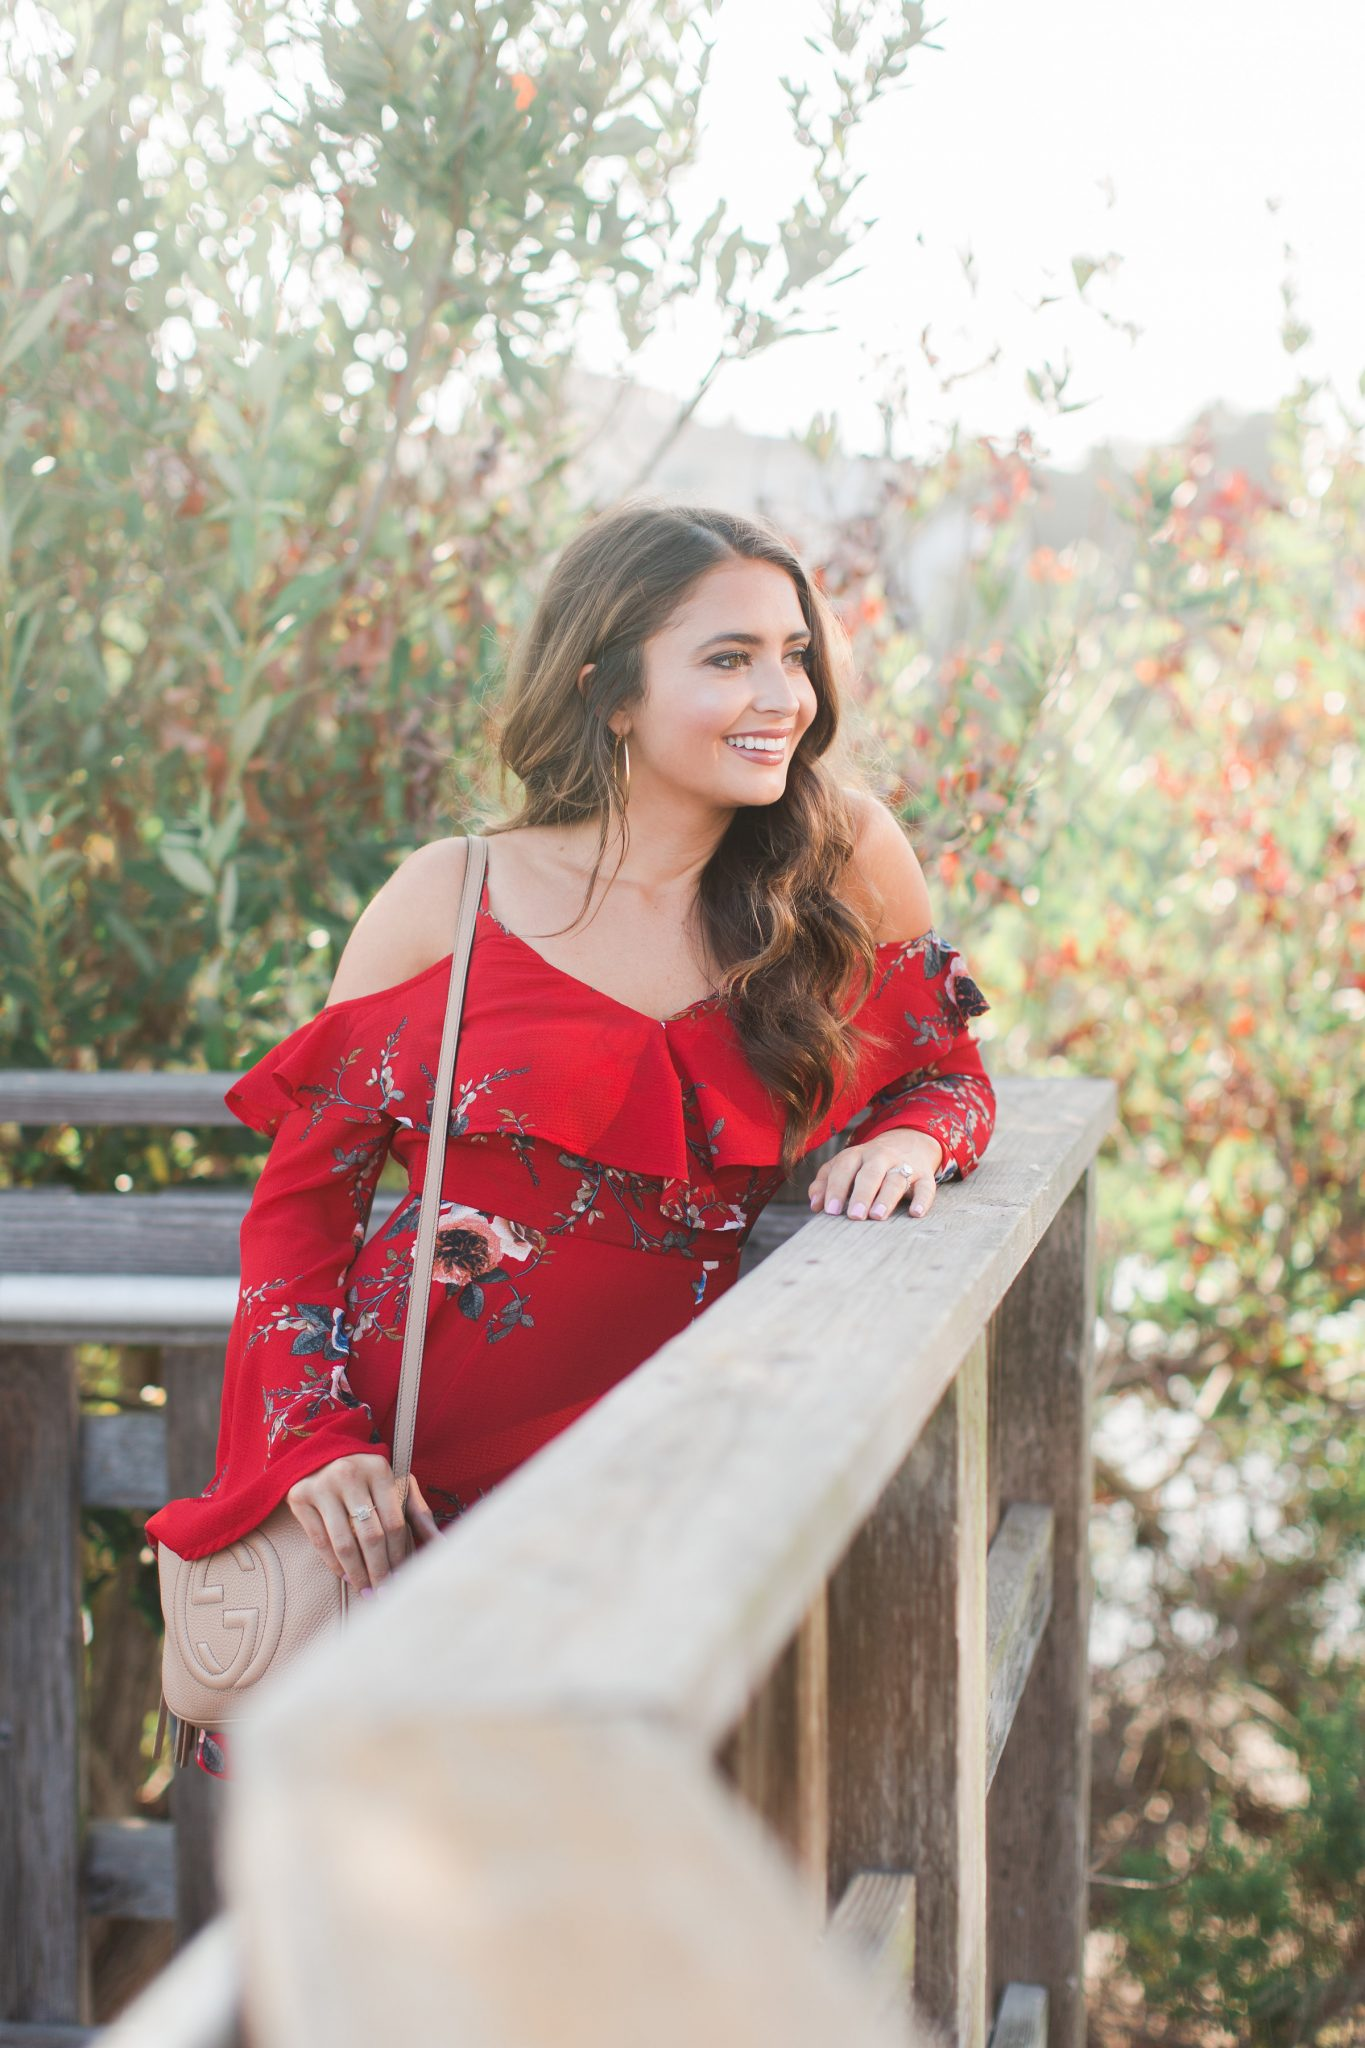 Maxie Elle | Red floral dress - Santa Barbara Getaway featured by popular Orange County travel blogger, Maxie Elle